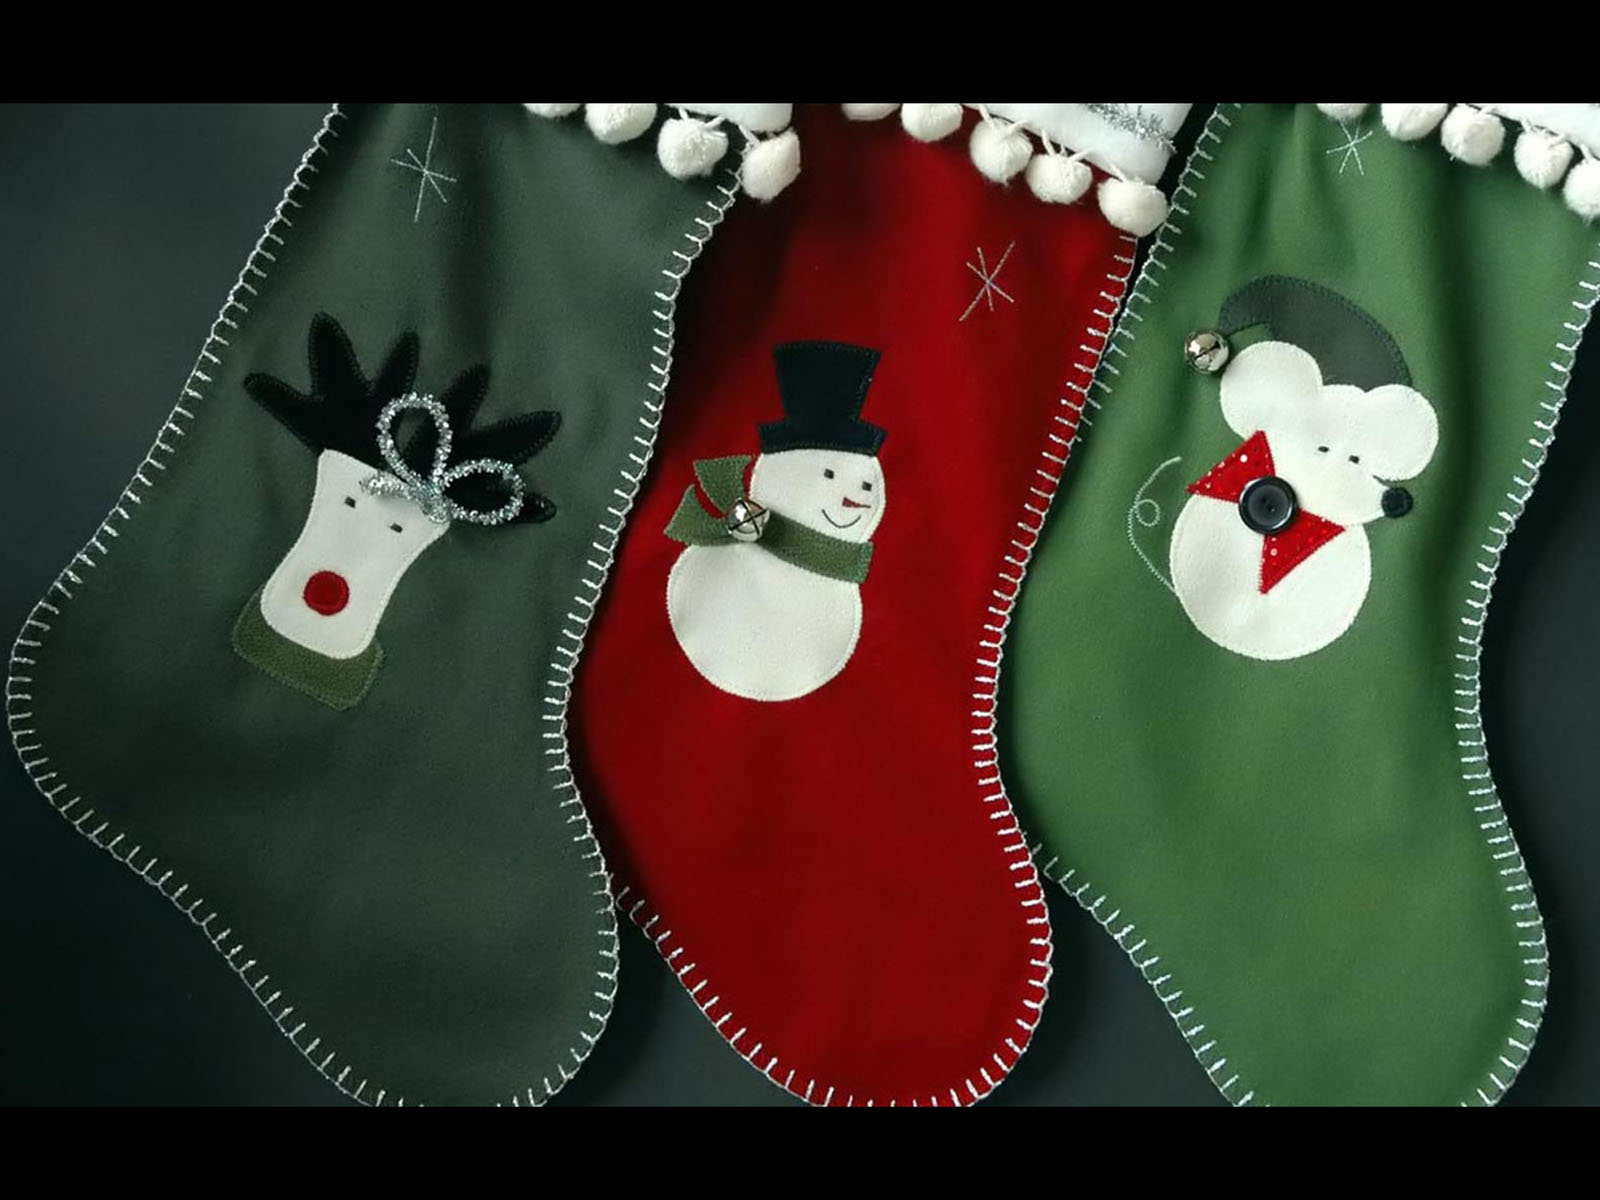 Funny Cute Babies Hd Wallpapers Wallpapers Christmas Stockings